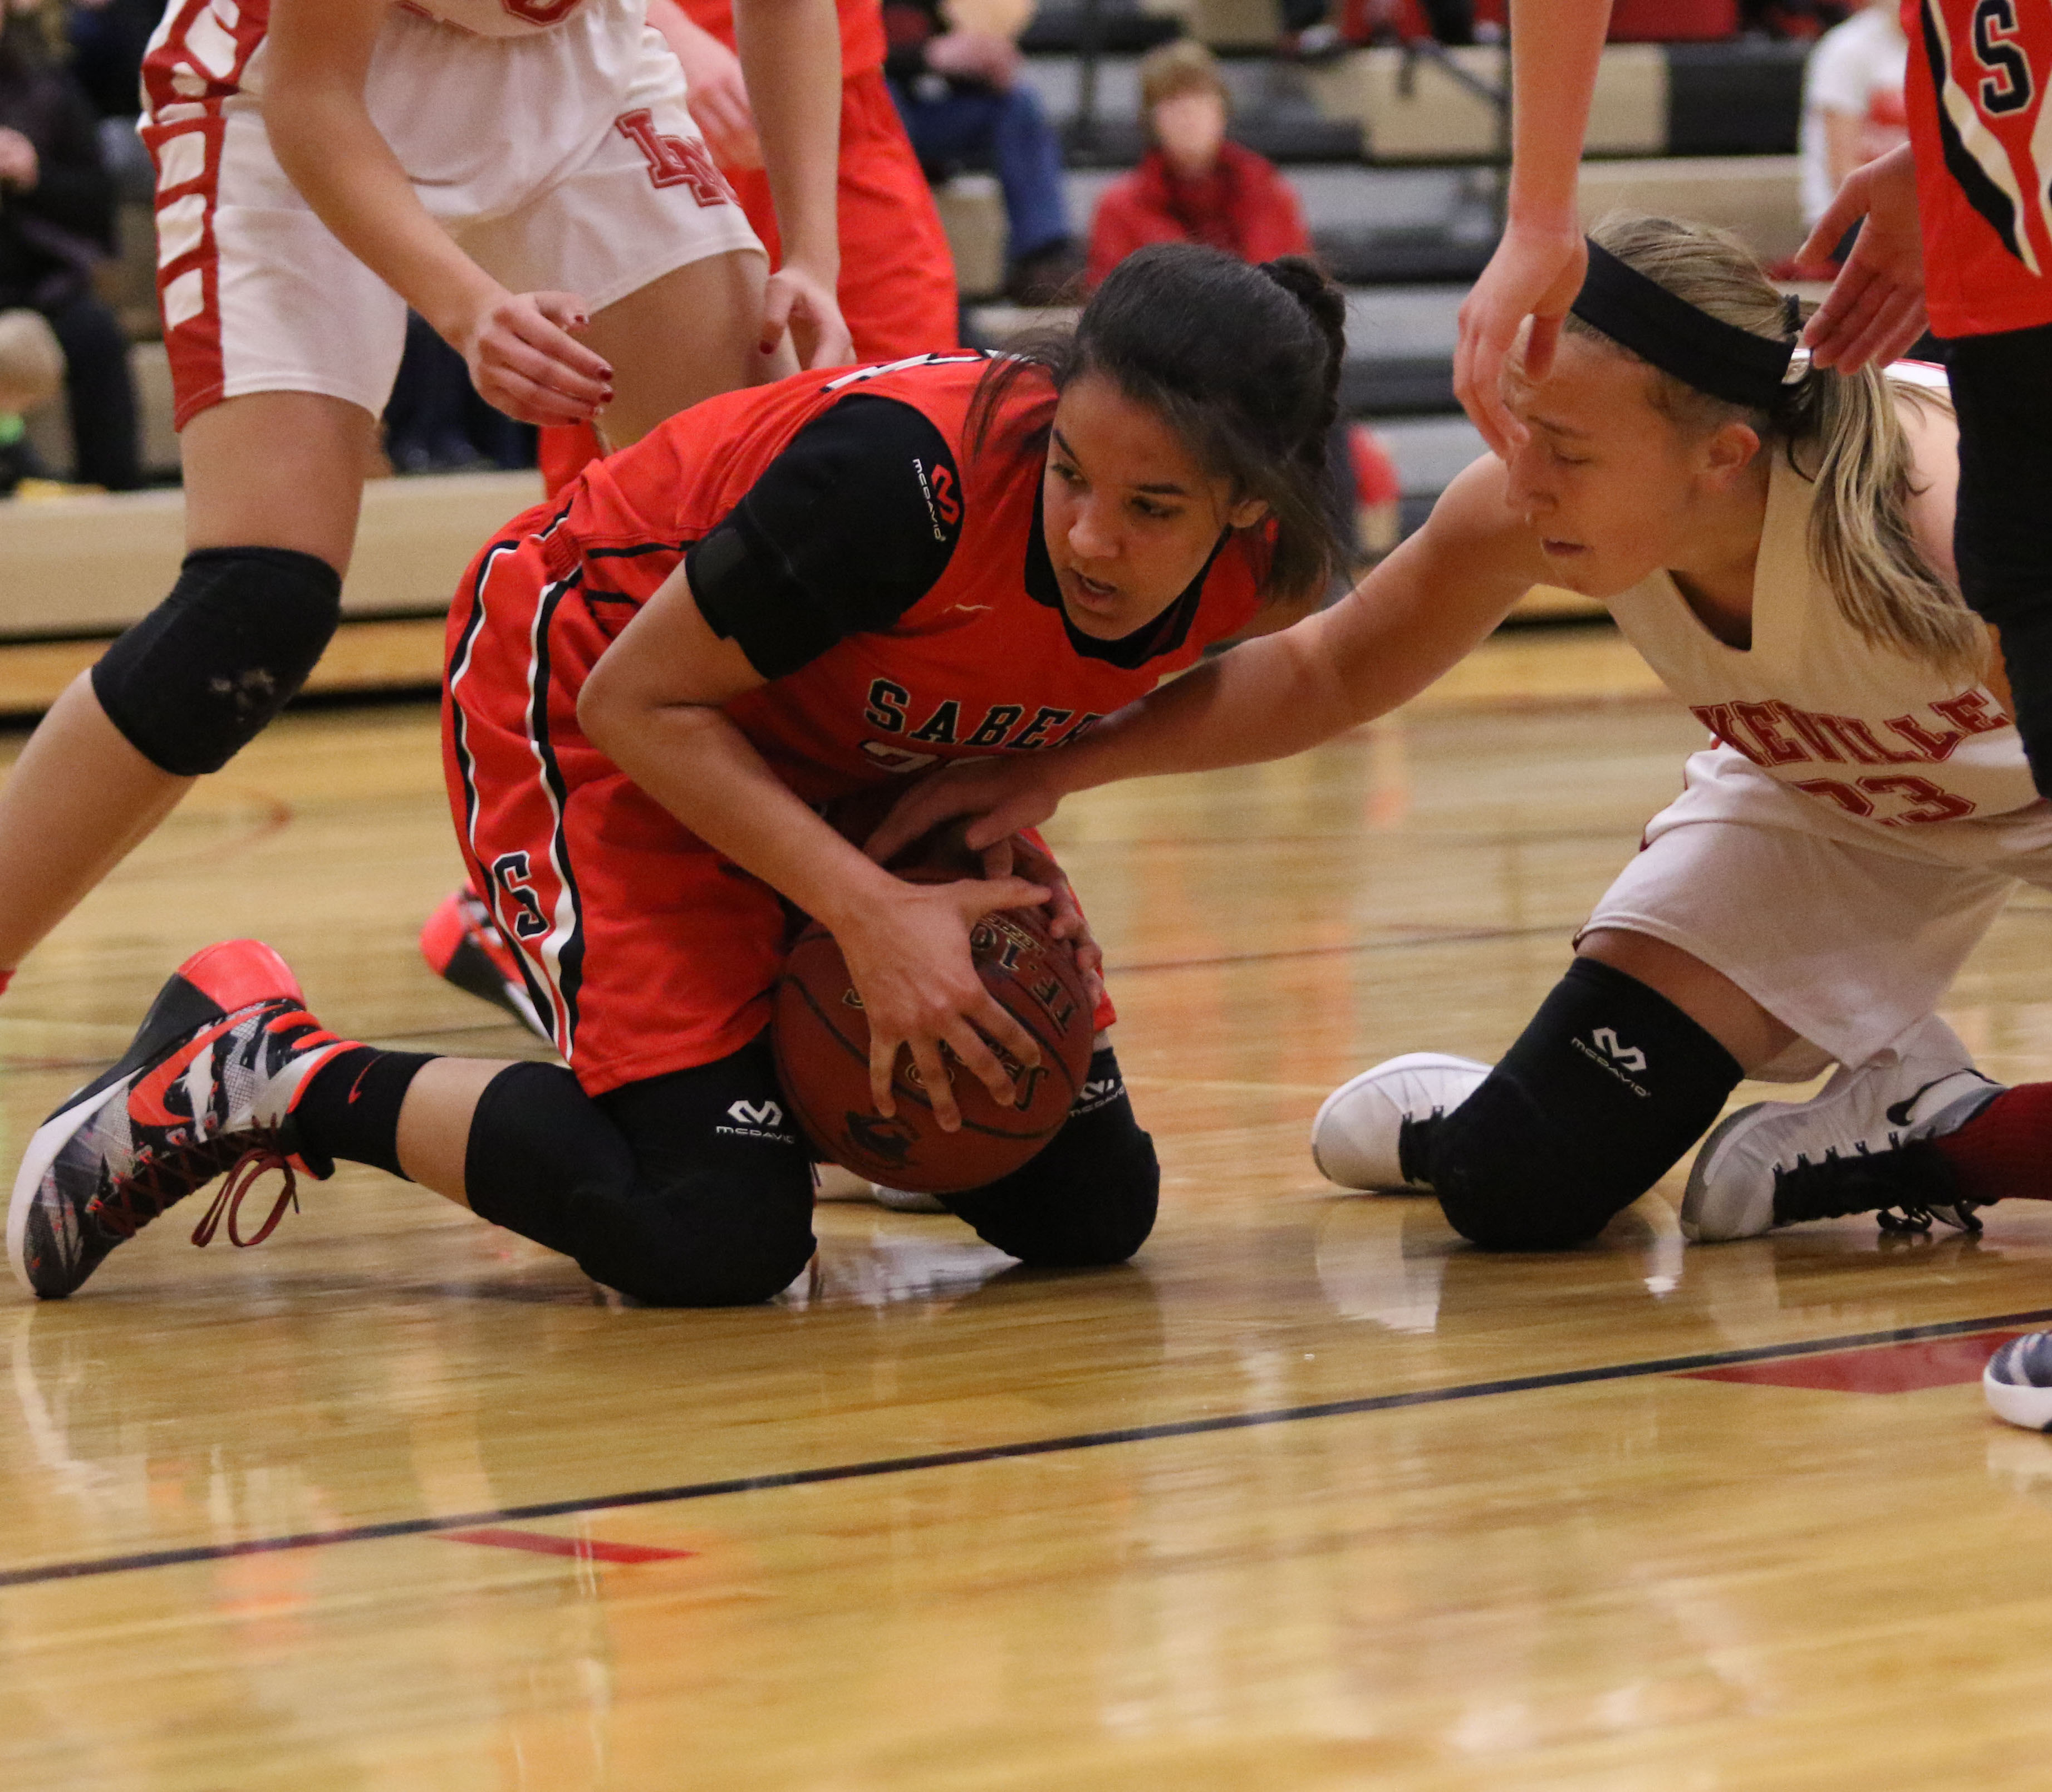 Shakopee's Mateya Hutton battles for the ball underneath as Lakeville North's Caitlyn Peterson attempts to regain possesion.  Photo by Cheryl Myers